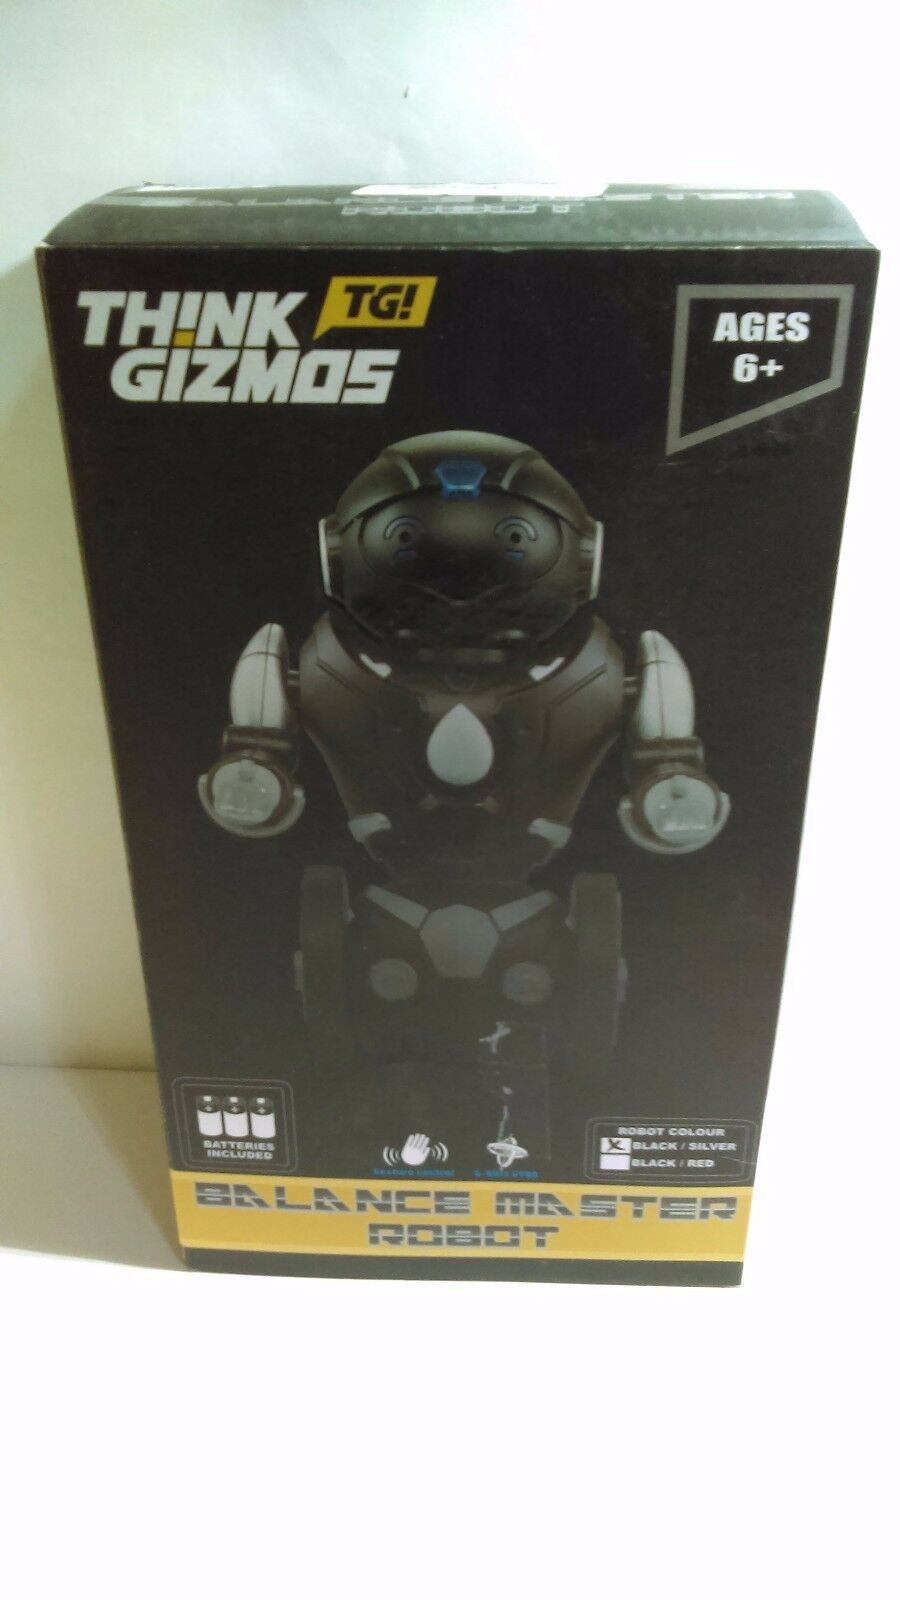 Remote Control Toy Robot For Kids TG634-S - Balance Robot (USED)